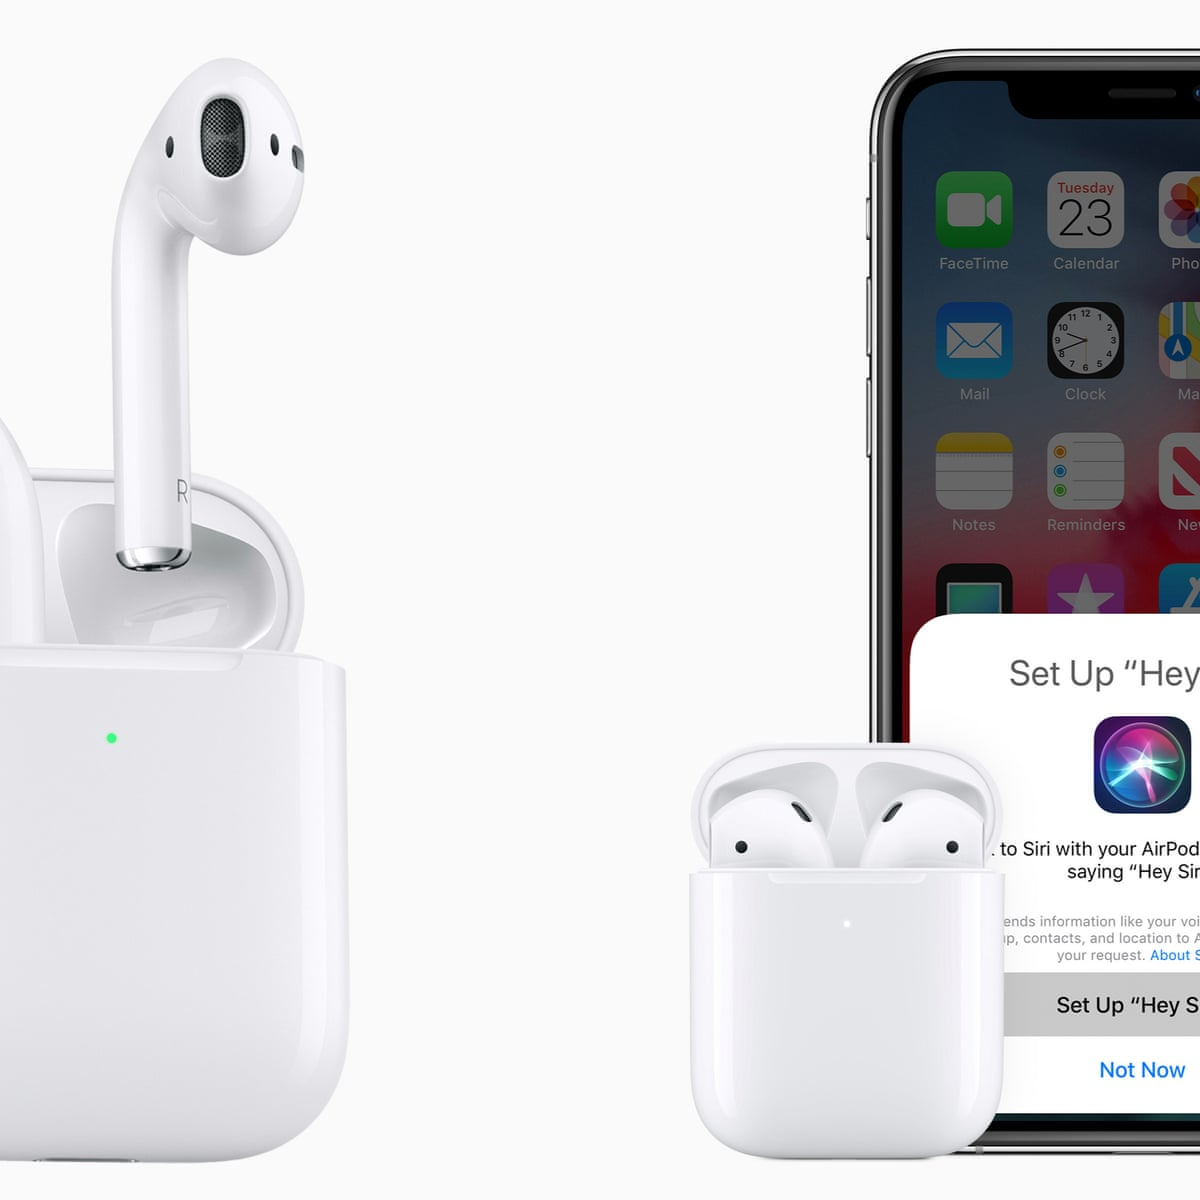 Apple Launches Second Generation Airpods With Wireless Charging